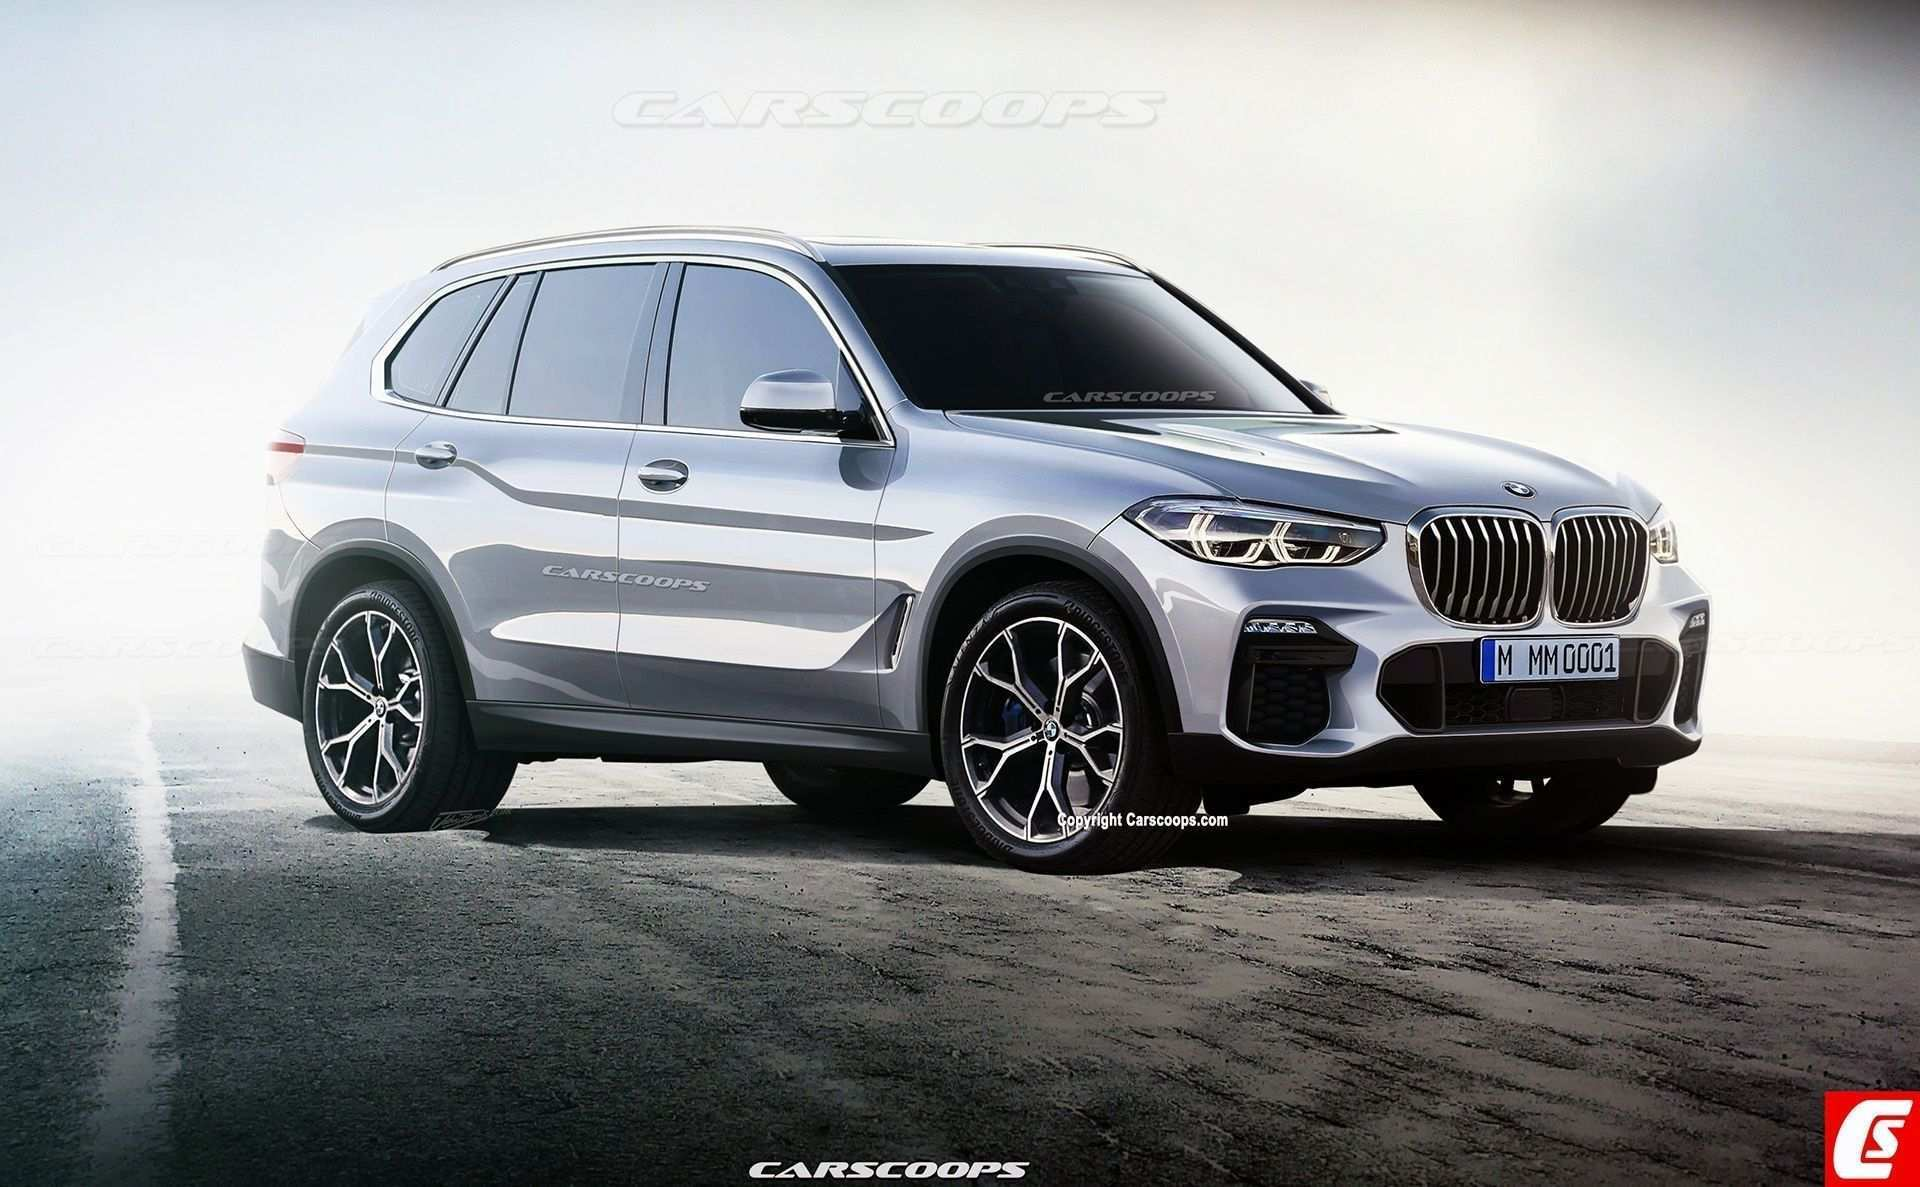 89 Great Bmw 2019 X5 Release Date Performance Rumors by Bmw 2019 X5 Release Date Performance